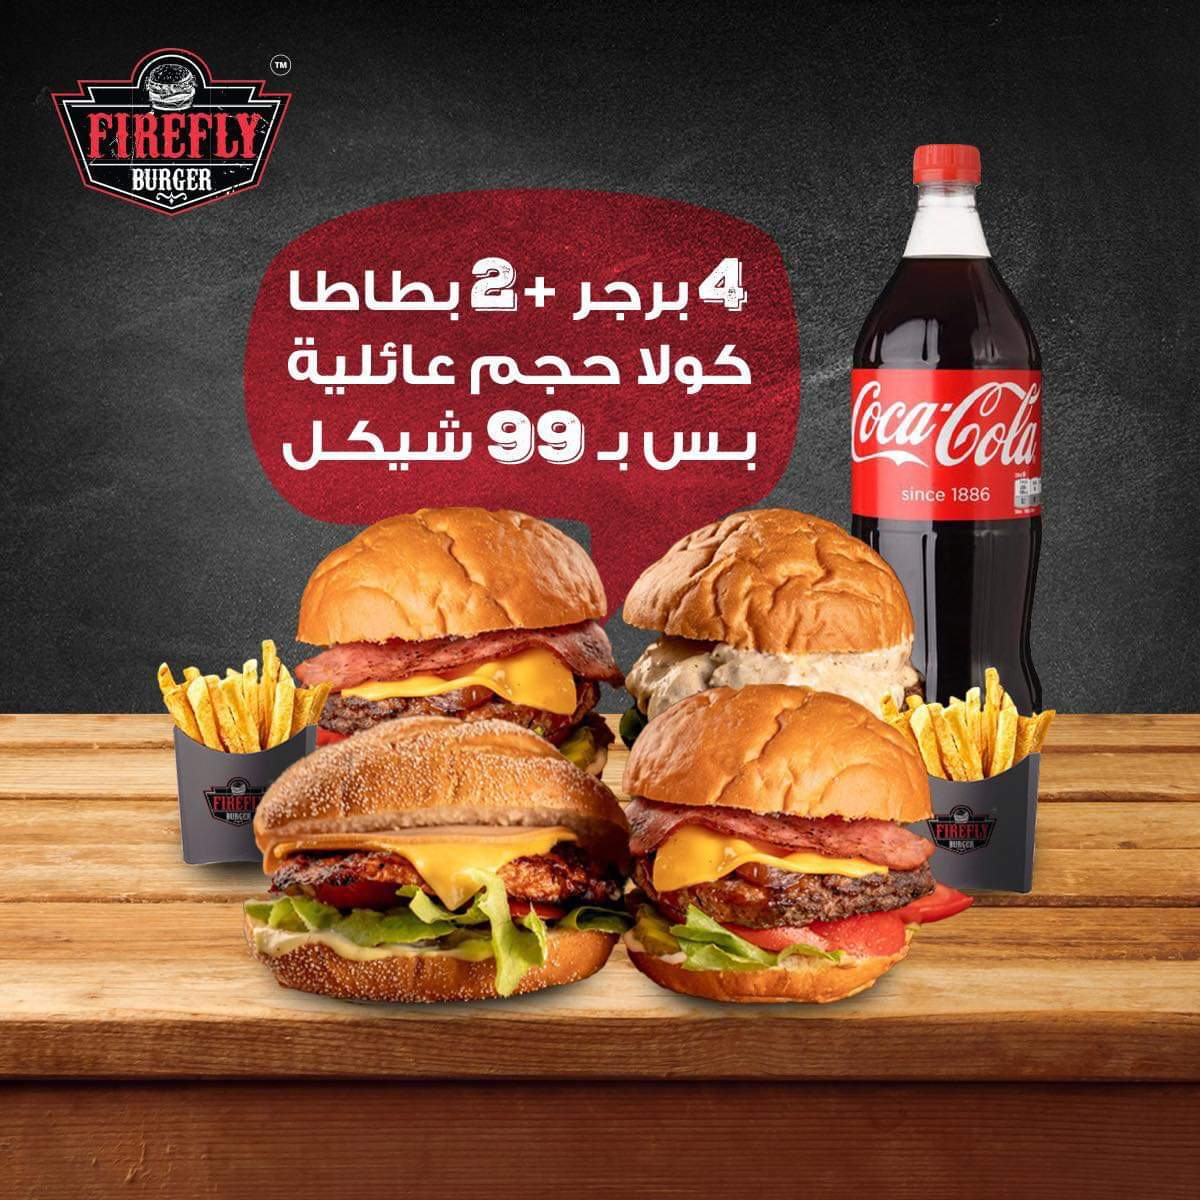 4 burger 150 g + 2 fries + family Coca-Colal